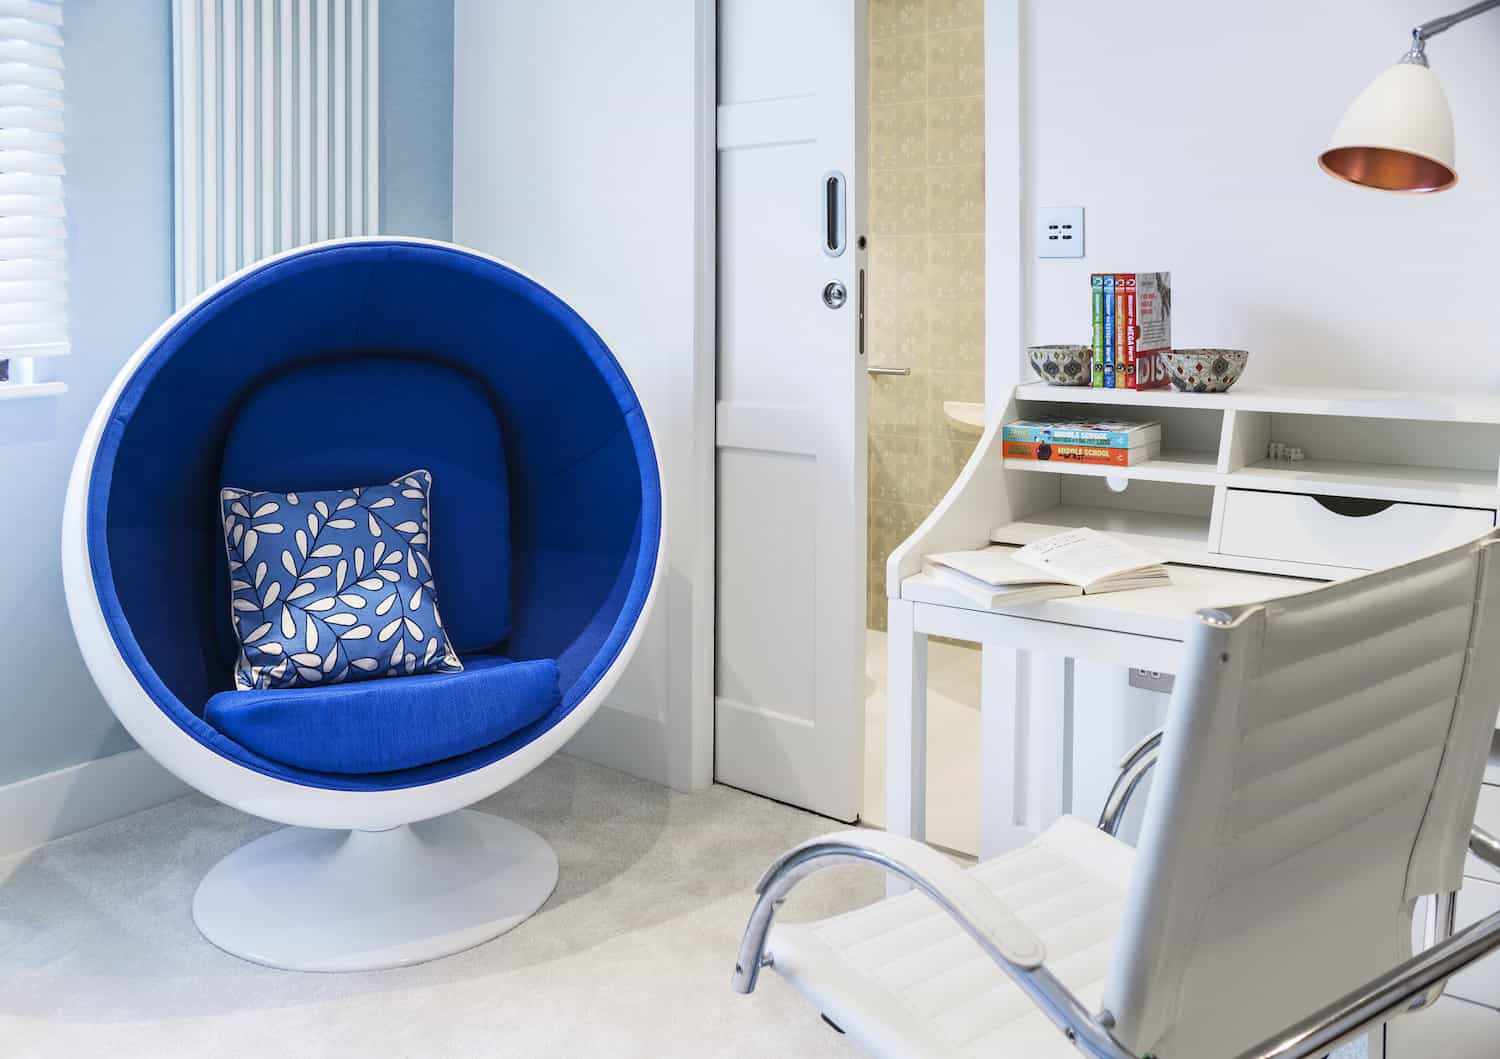 The kids bedroom includes a space pod chair that kids love. There's also a white desk with comfortable modern white desk chair.